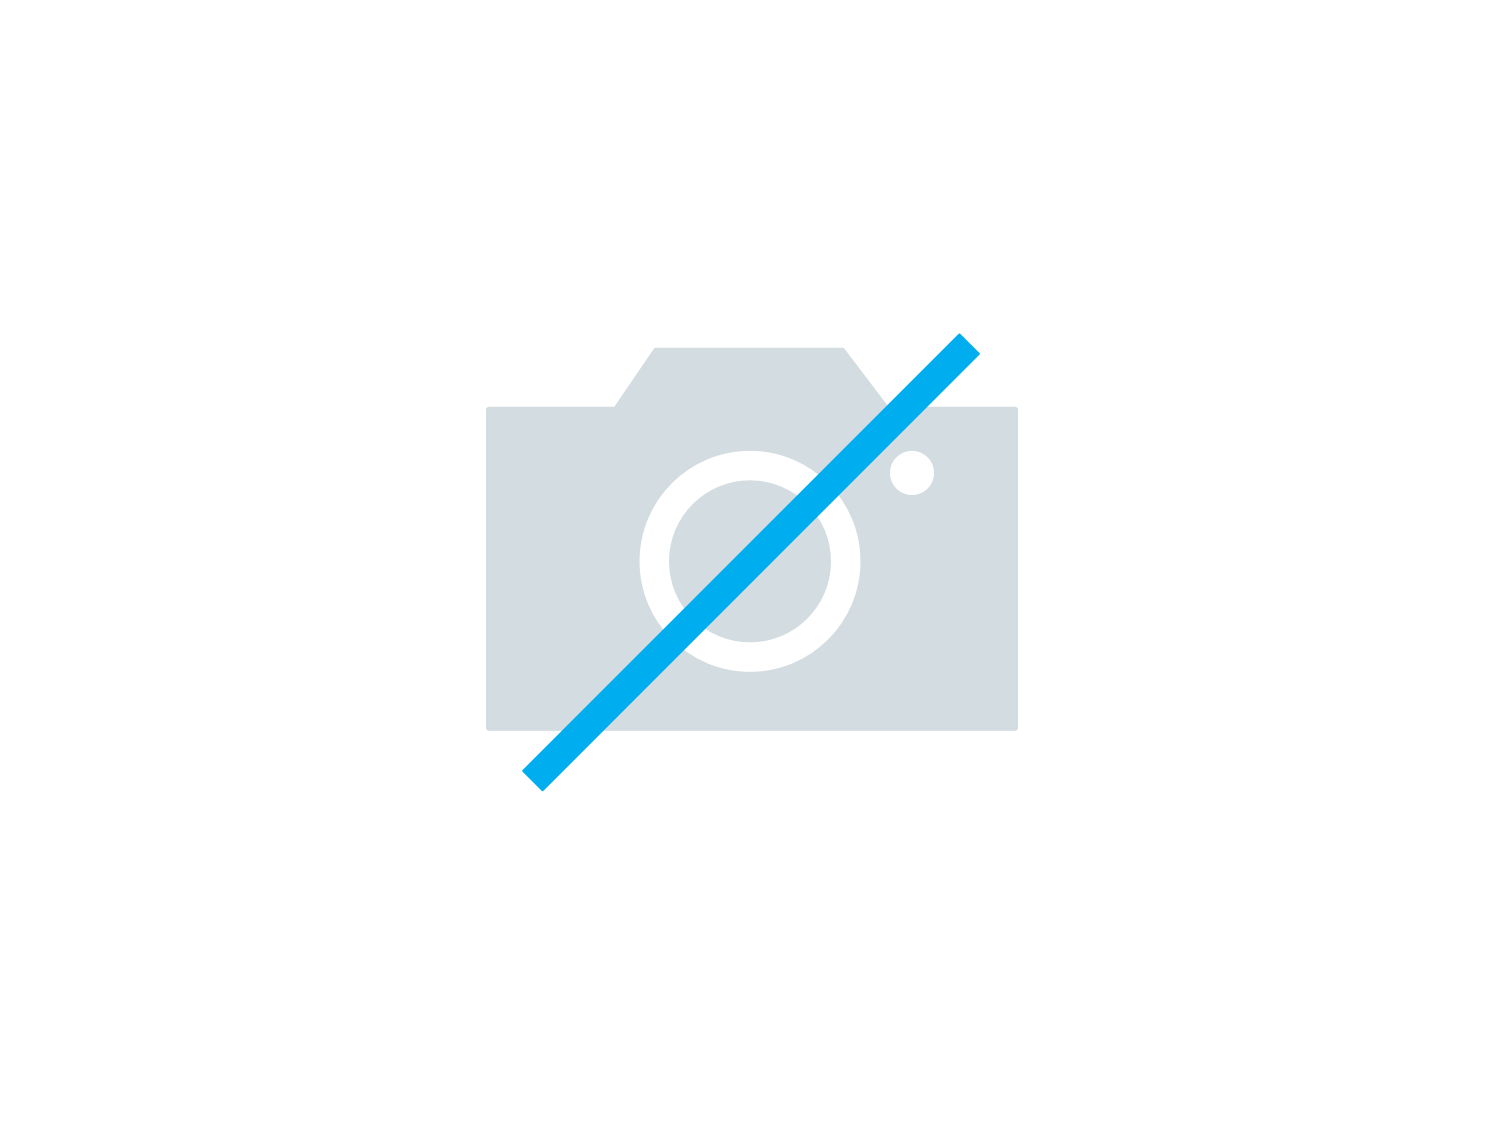 Gaming chair scorpion zwart wit weba meubelen